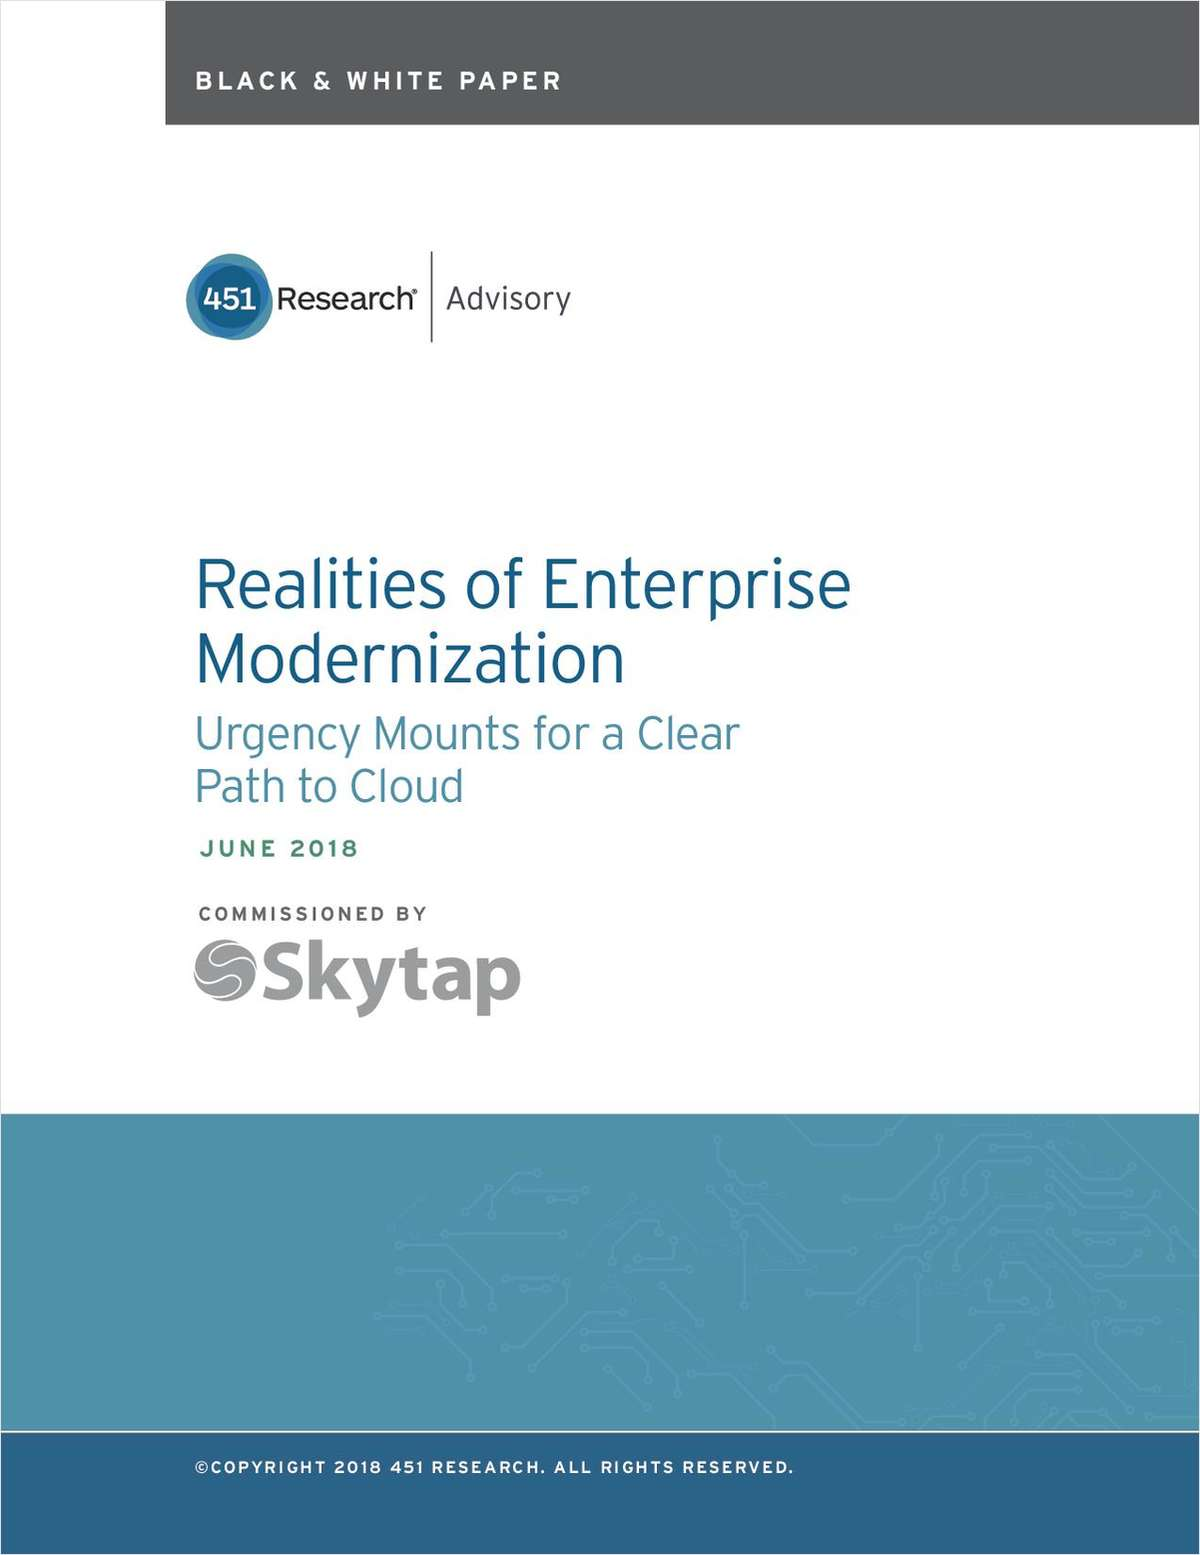 Realities of Enterprise Modernization: Urgency Mounts for a Clear Path to Cloud